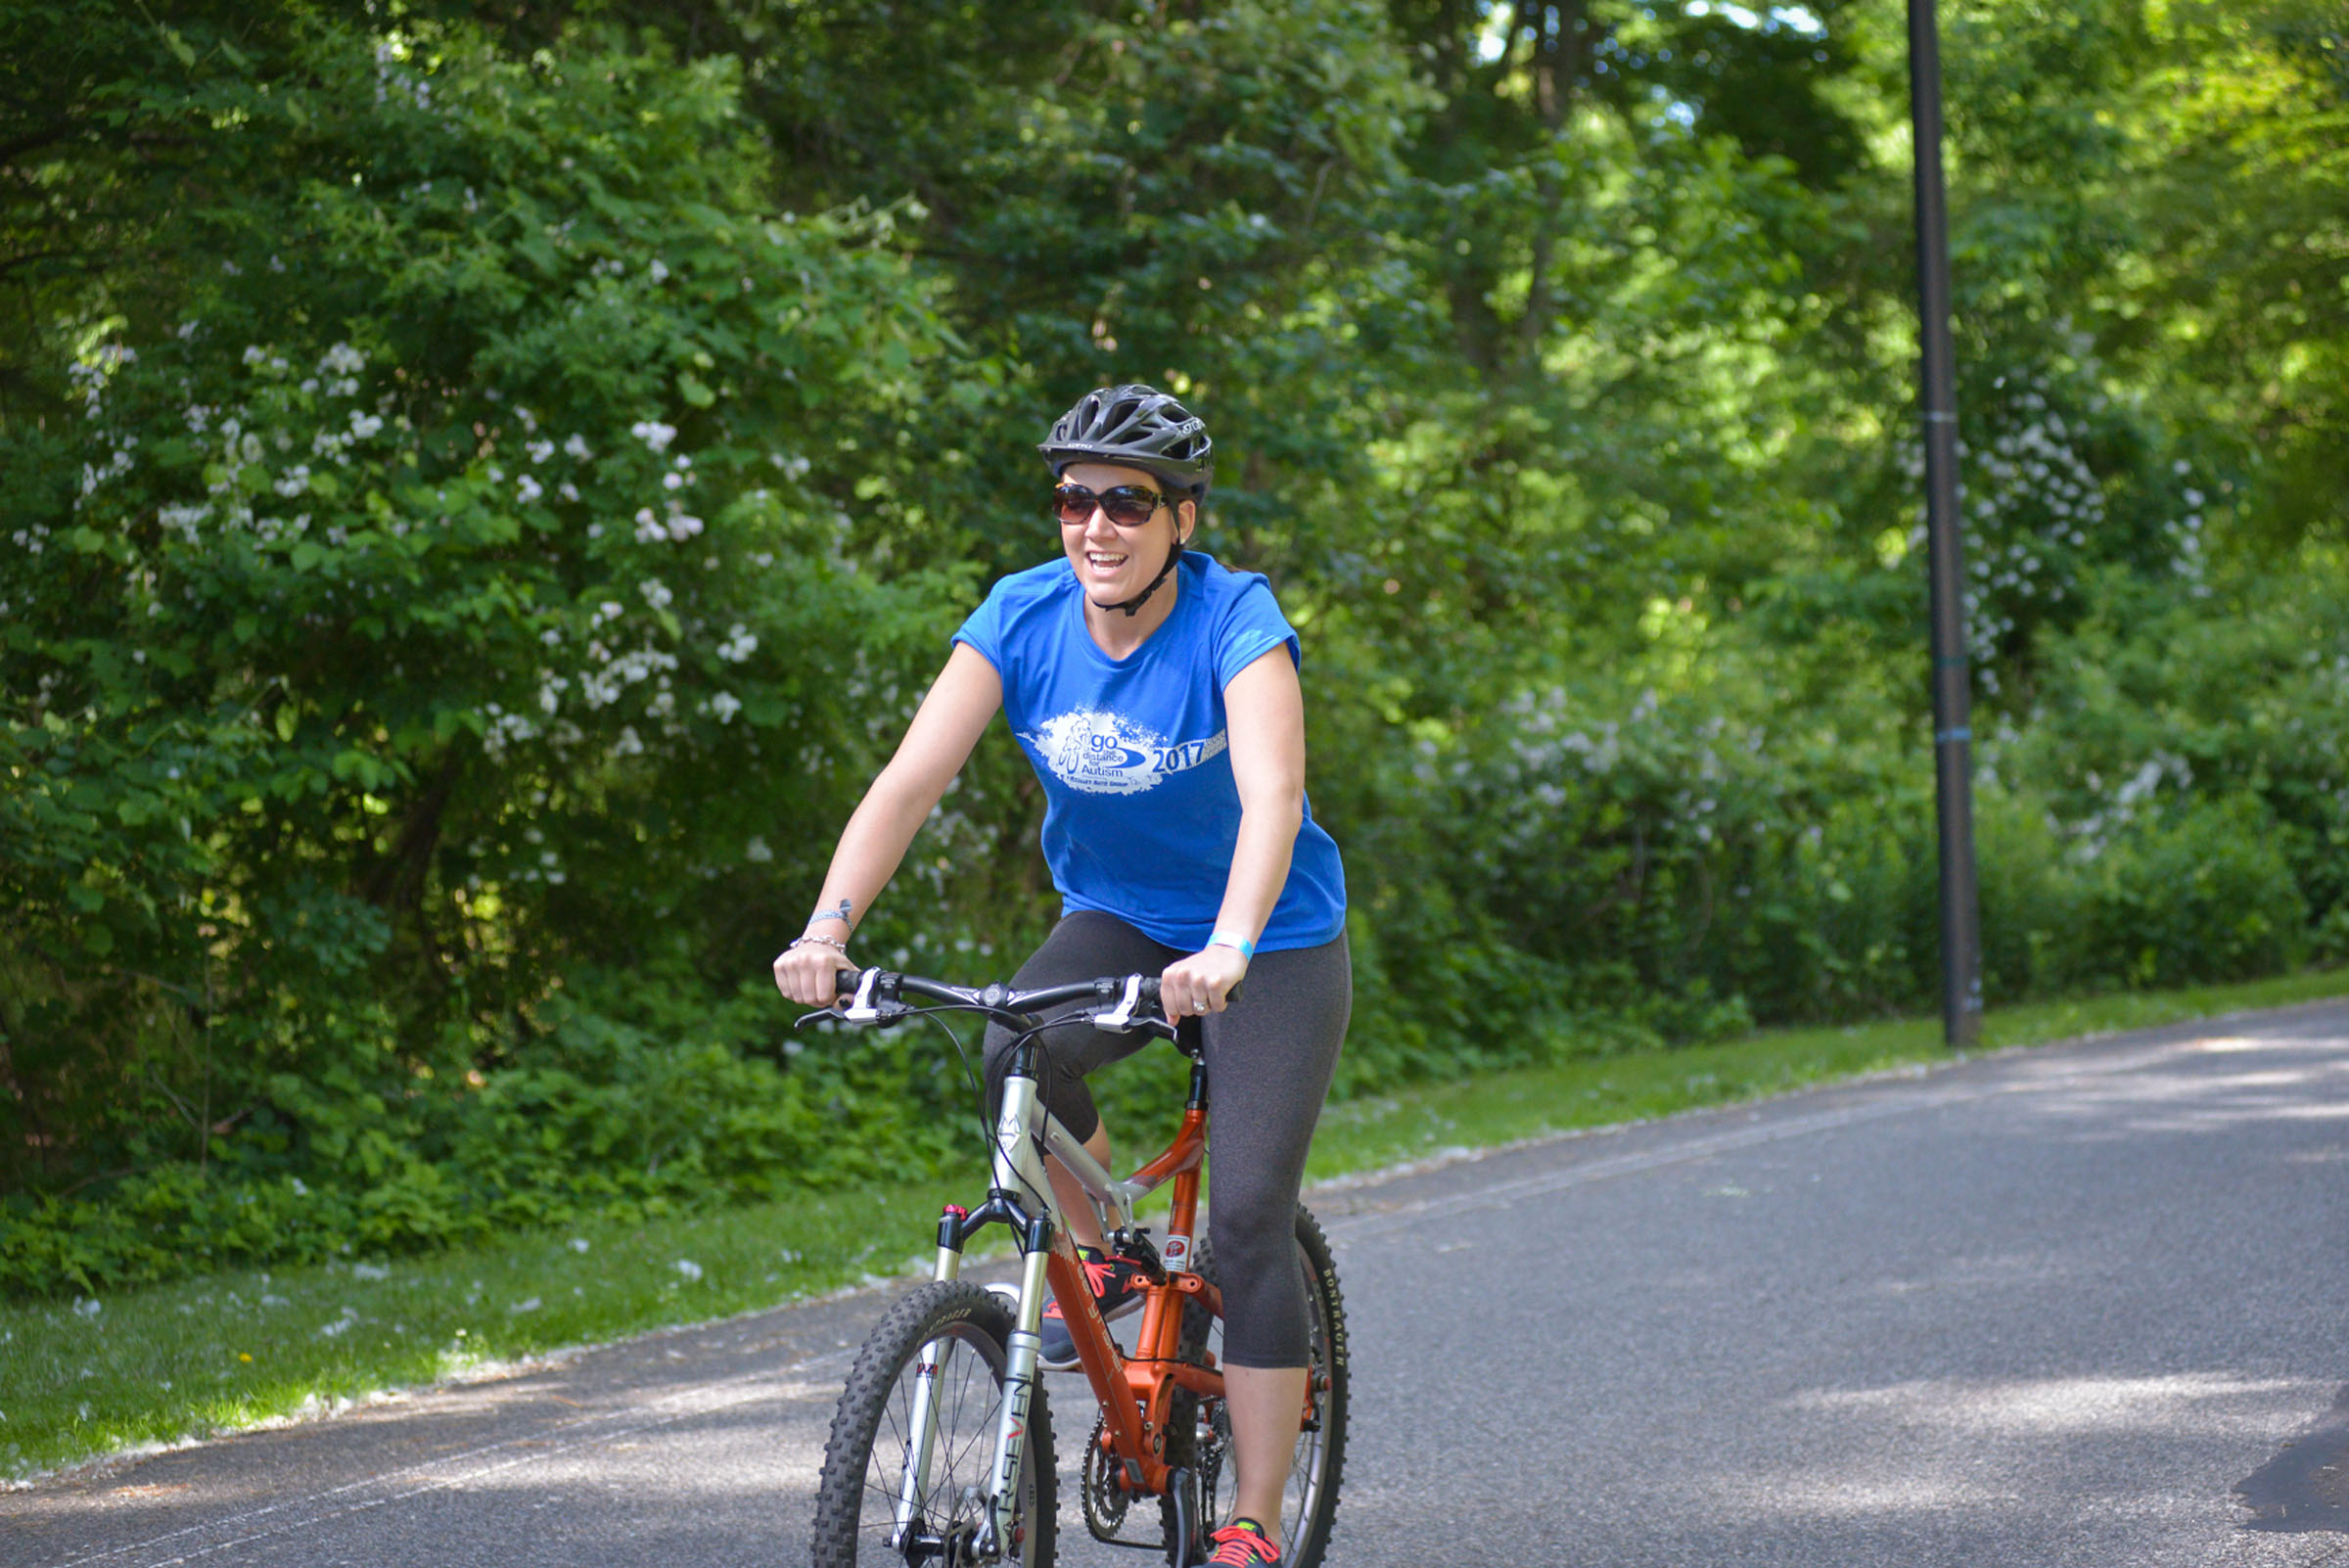 2017-06-04 GTD4A Charity Bike Ride - BCC - Paramus NJ-2084.jpg